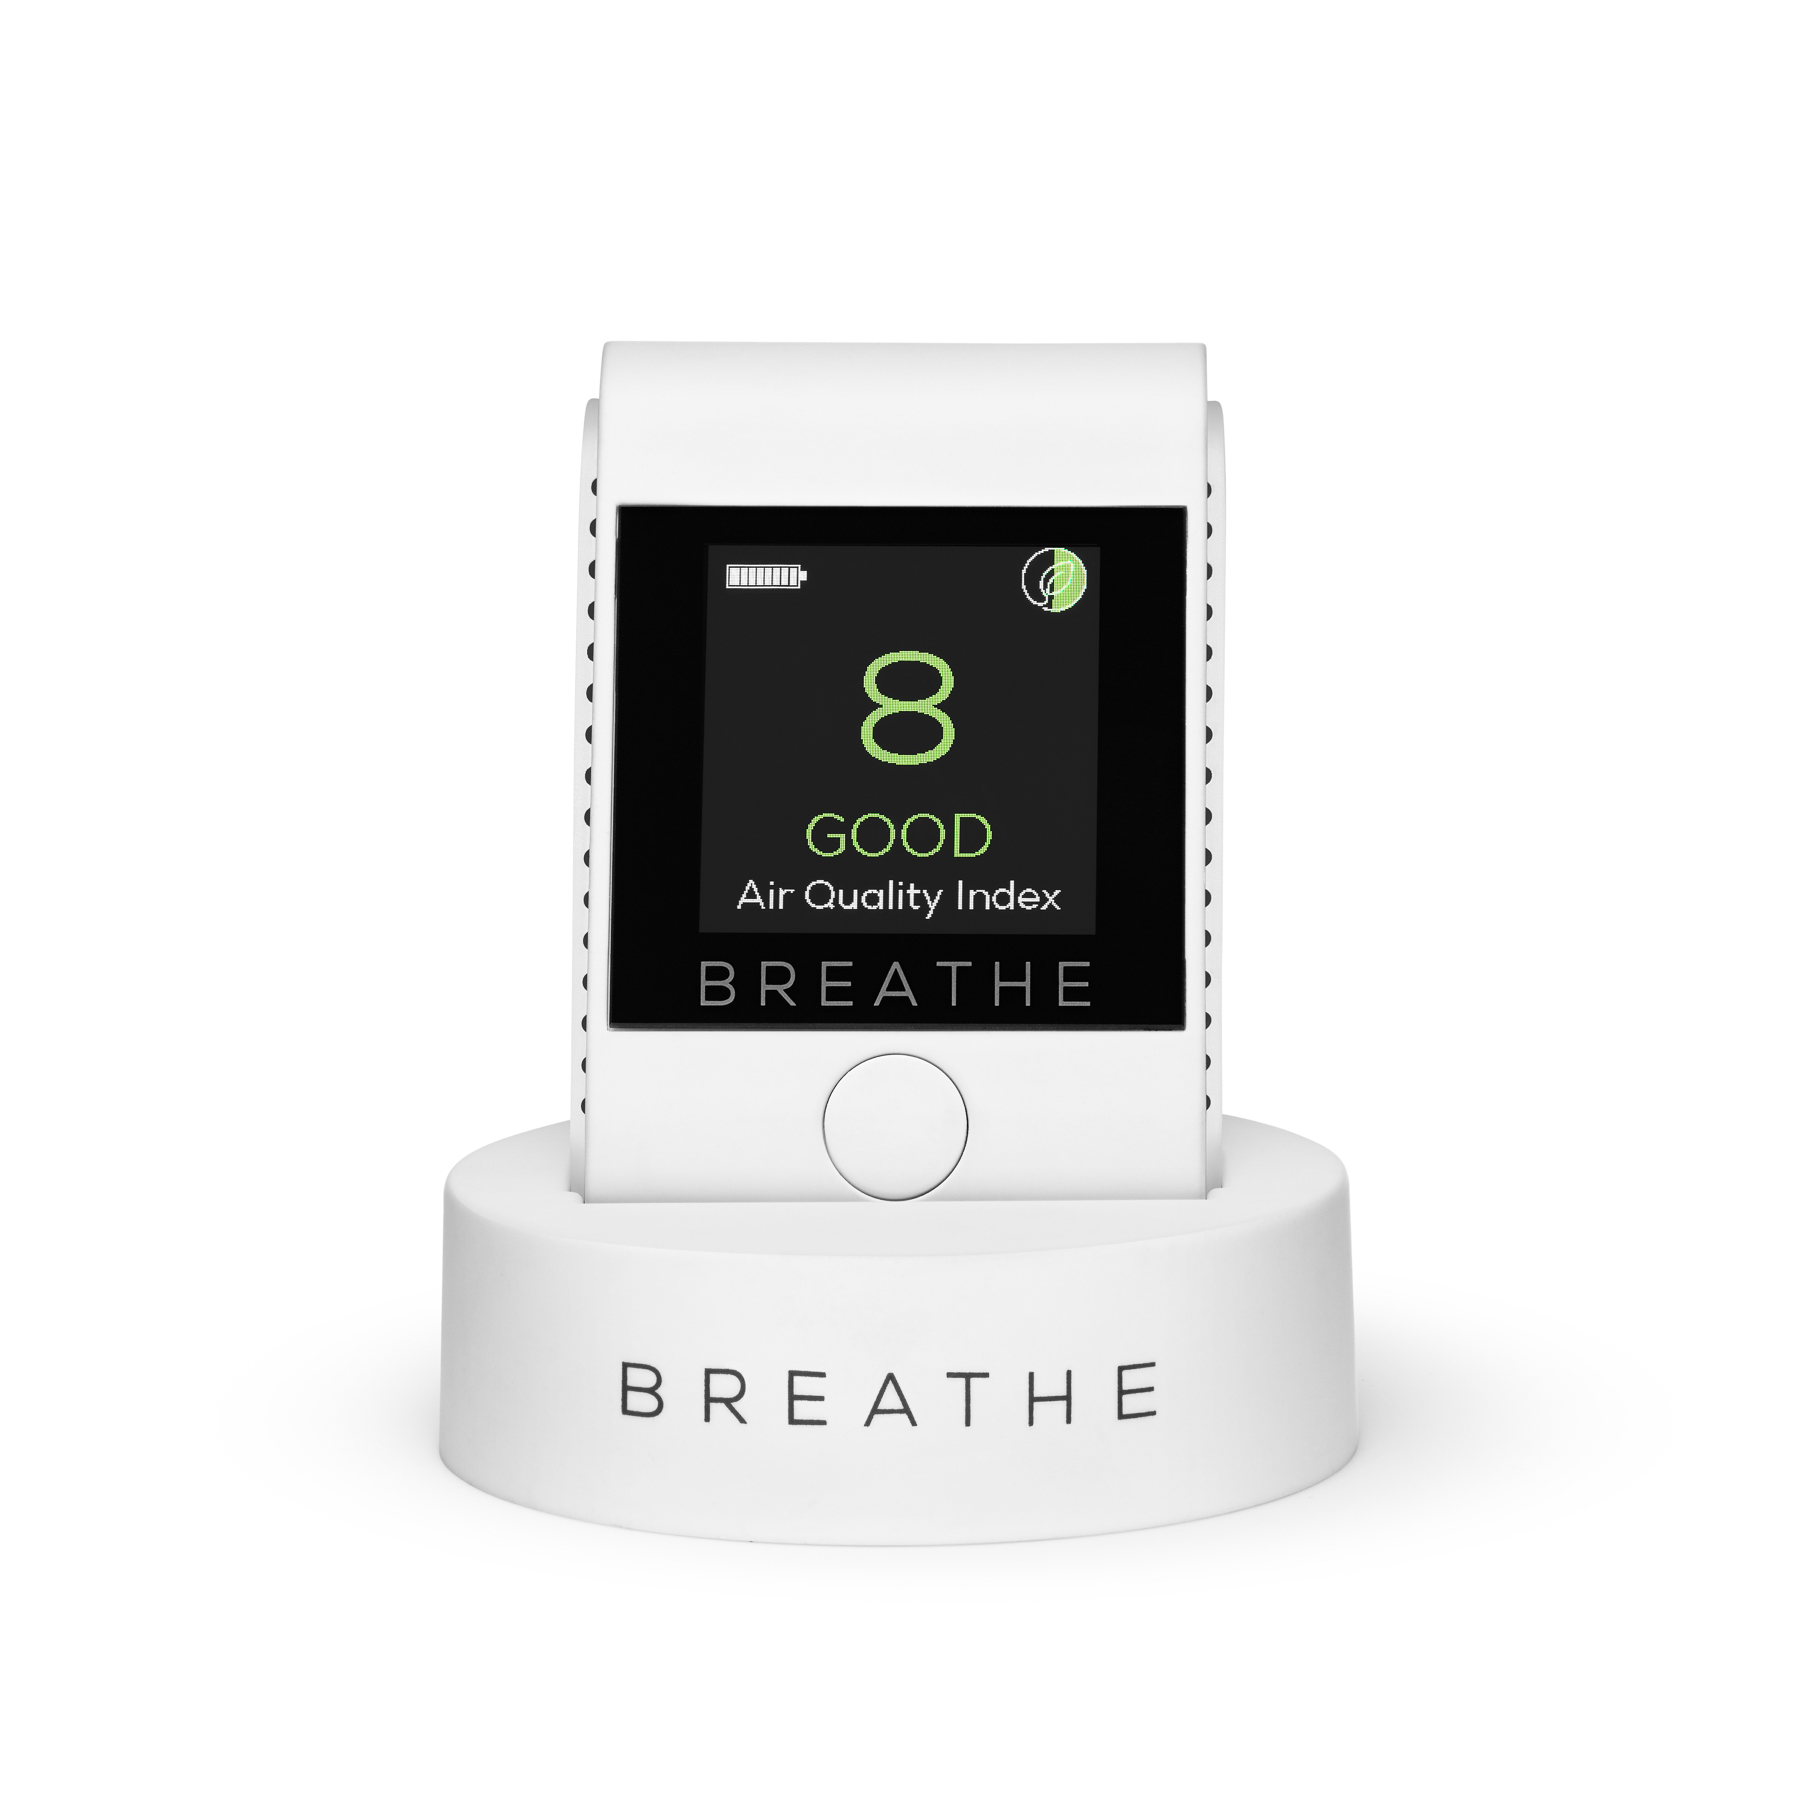 BREATHE Smart air quality monitor front.jpg